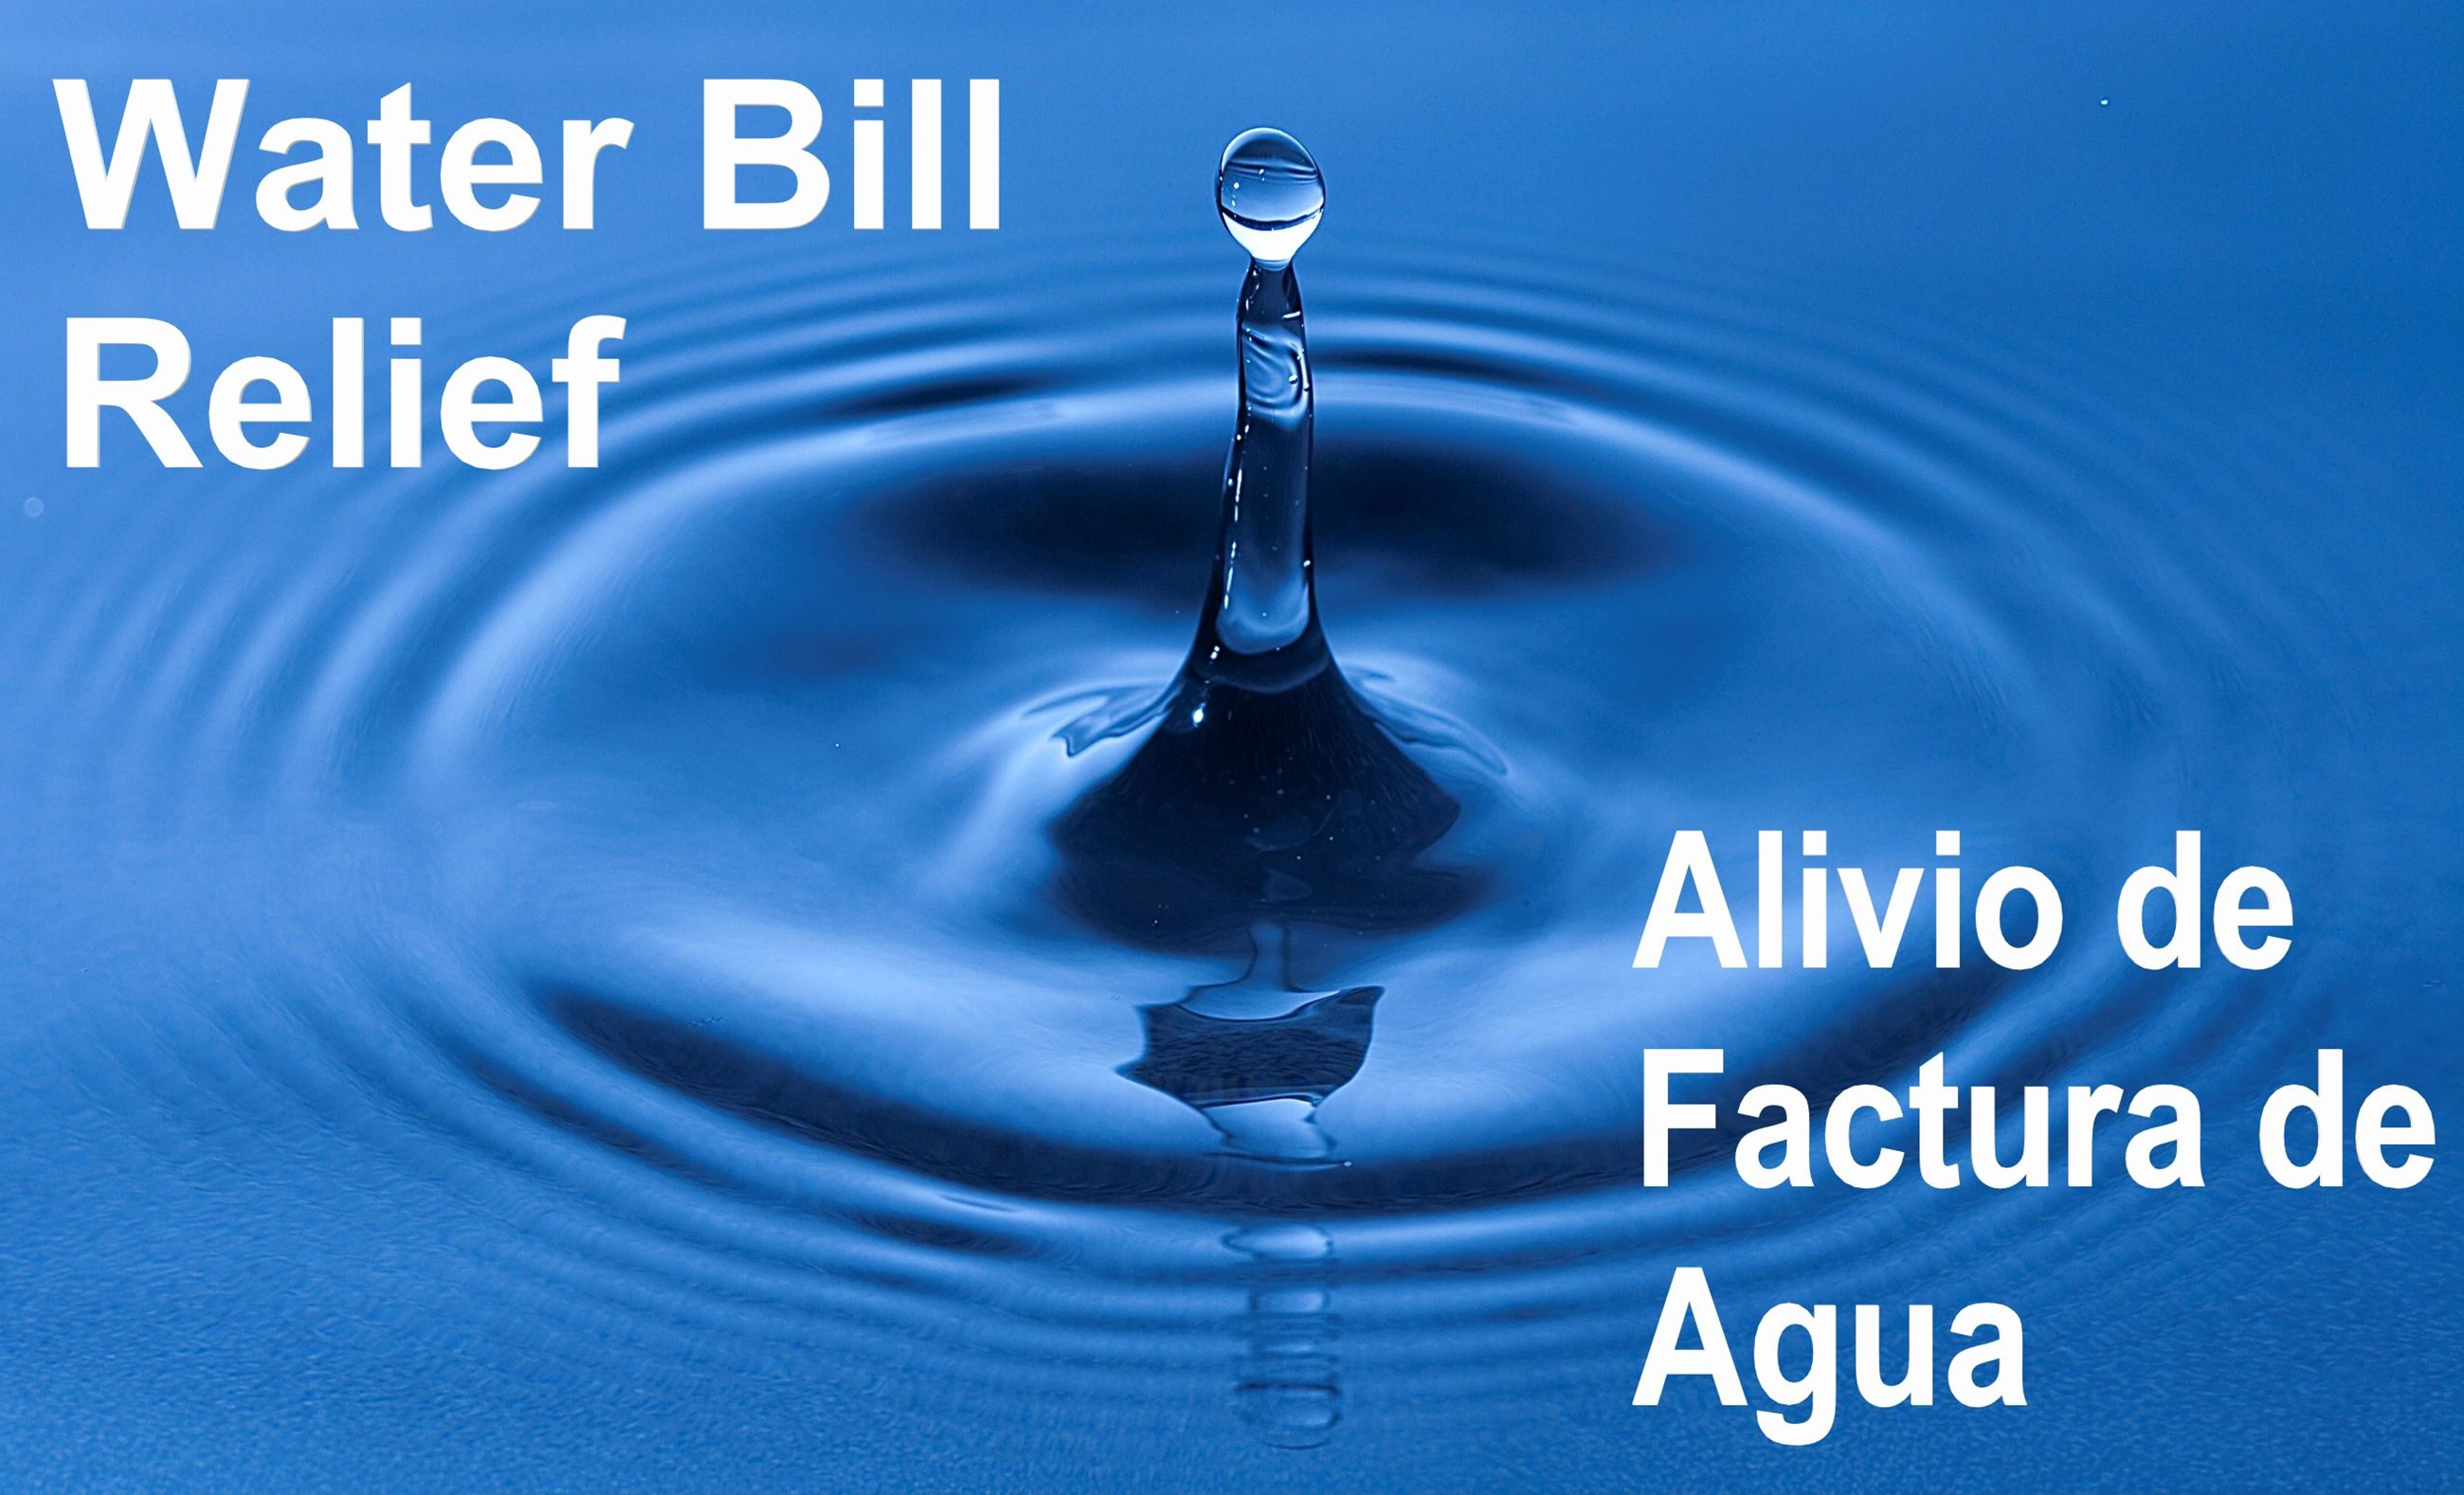 Water Bill Relief